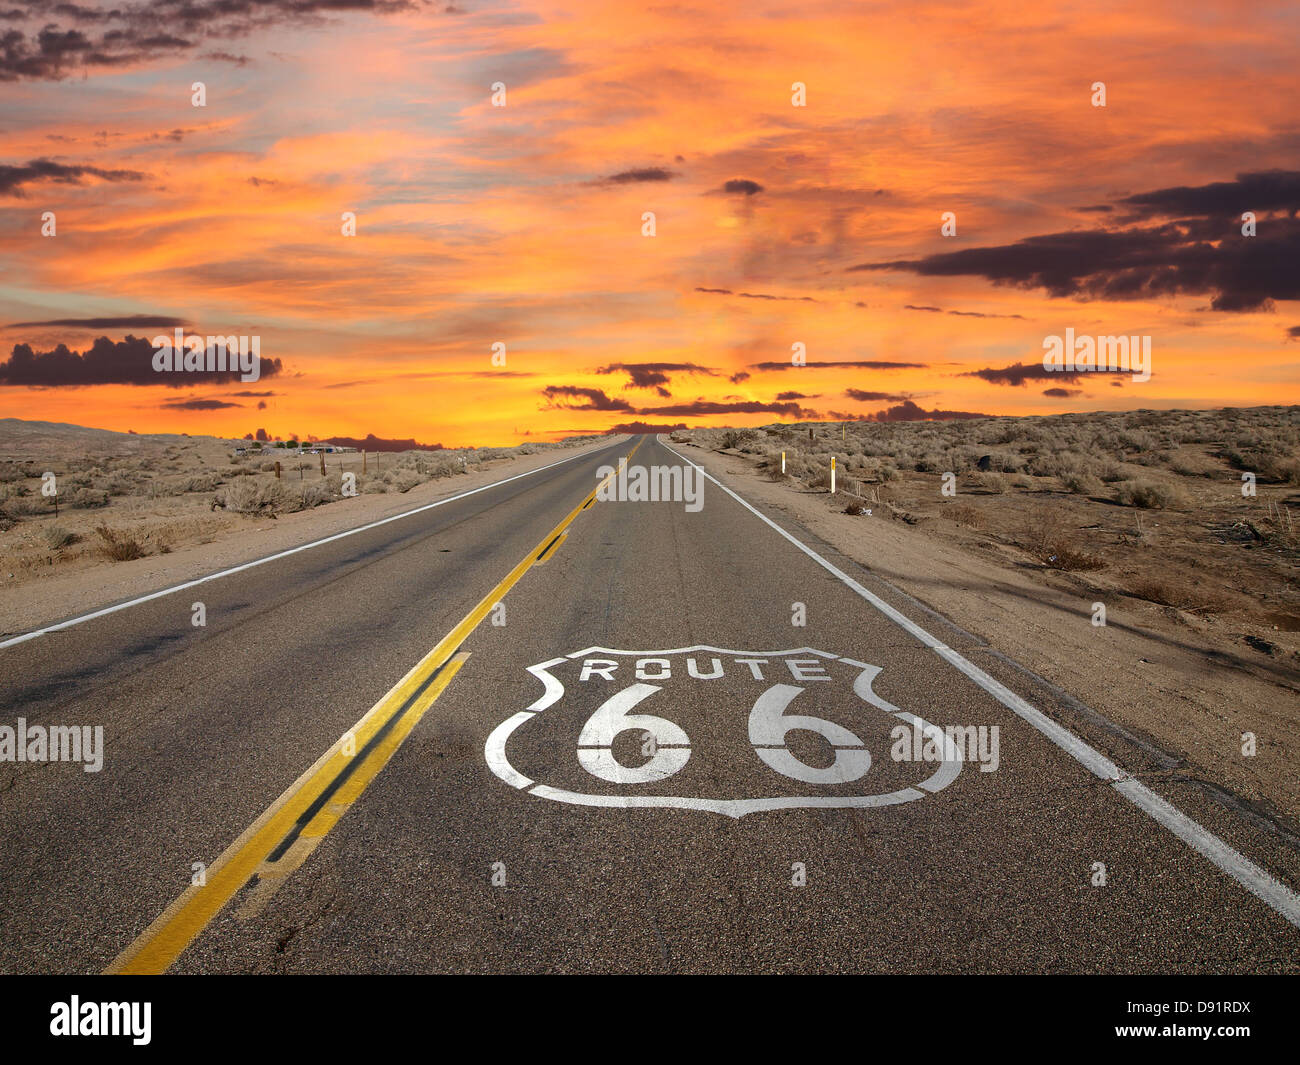 Route 66 pavement sign sunrise in California's Mojave desert. - Stock Image